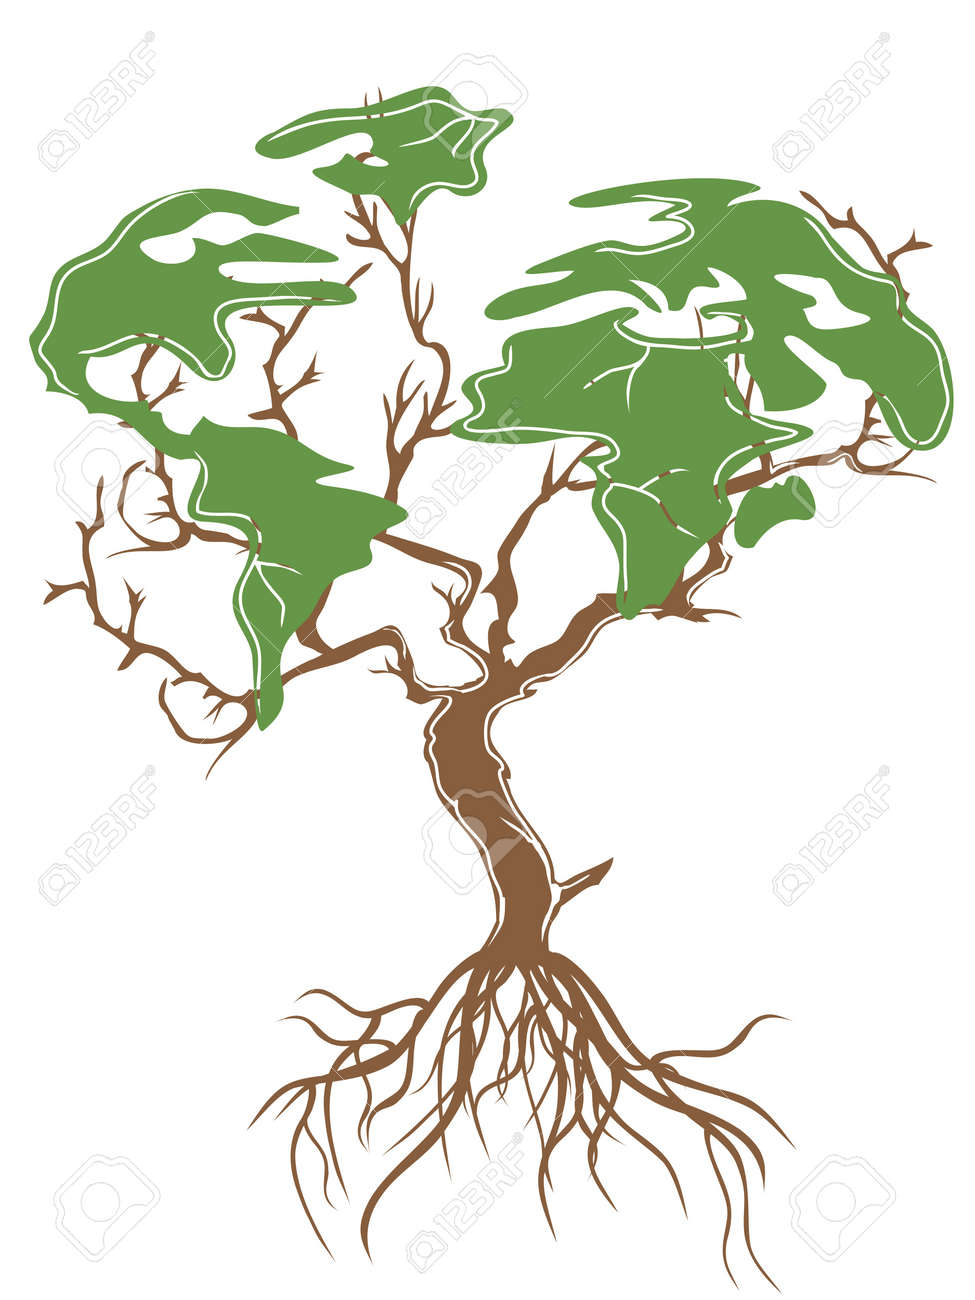 isolated green earth tree on white background Stock Vector - 10099638